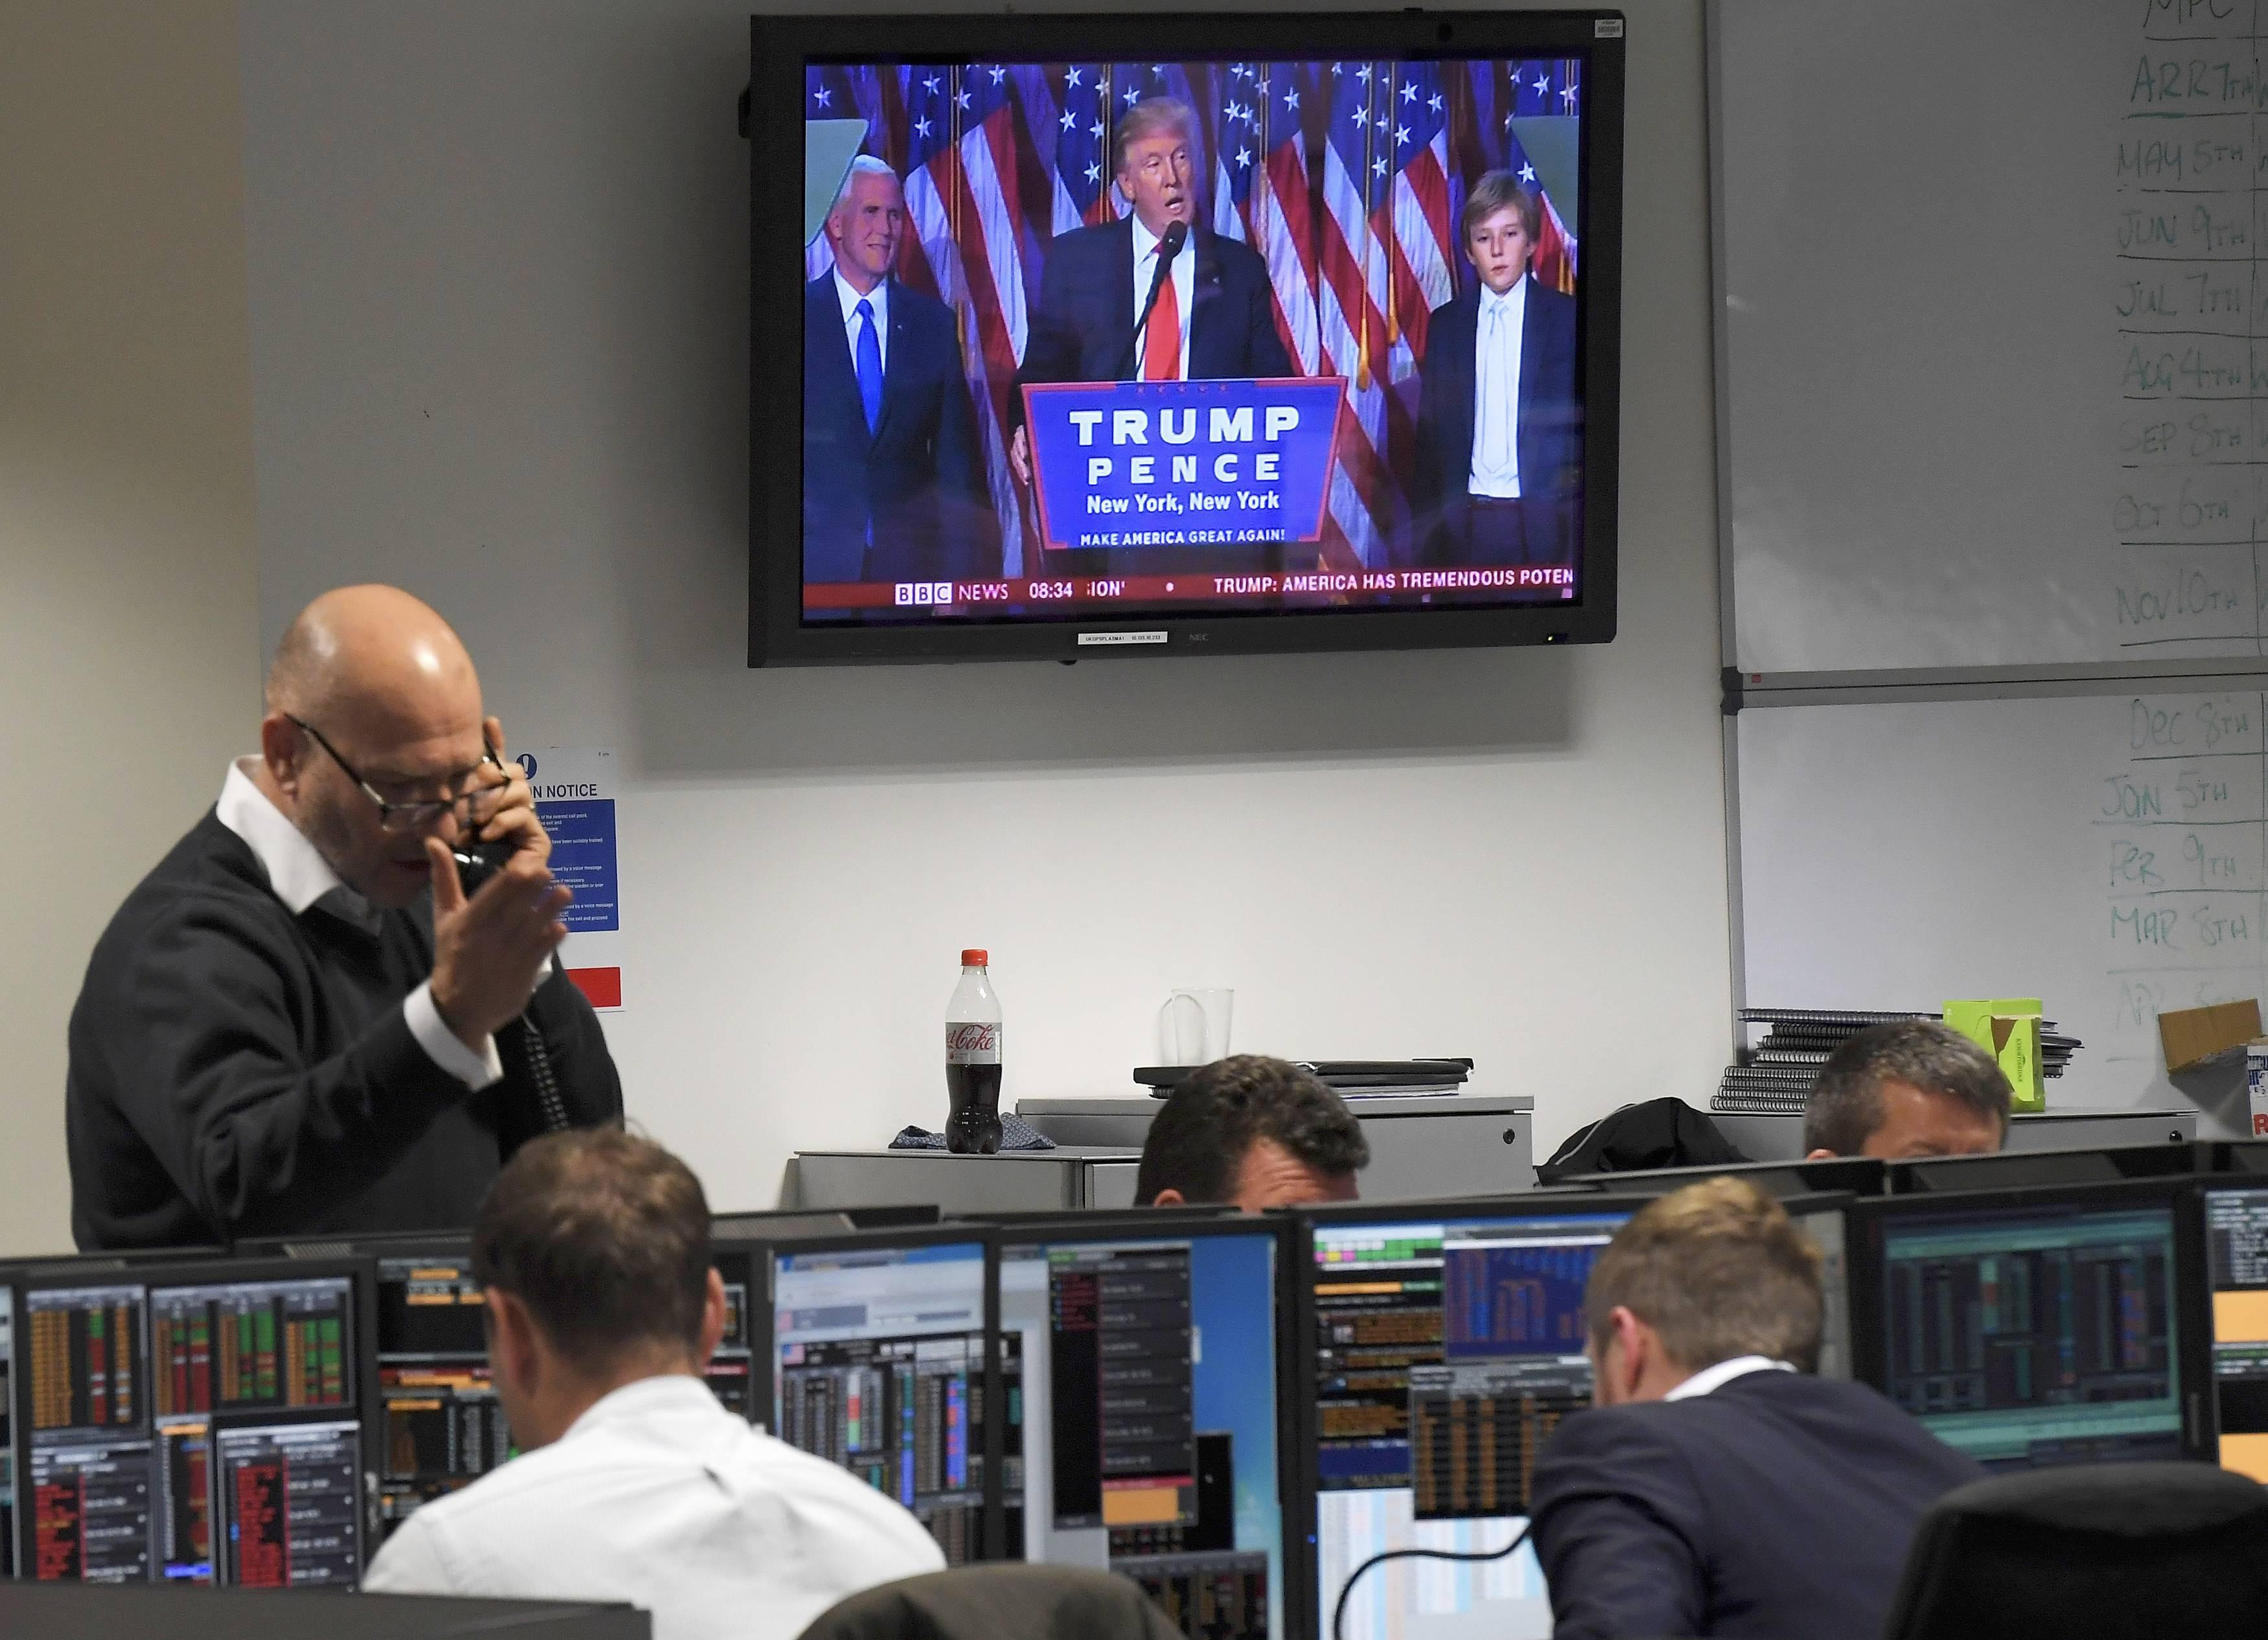 Trump victory shocks global firms reliant on open trade | Reuters